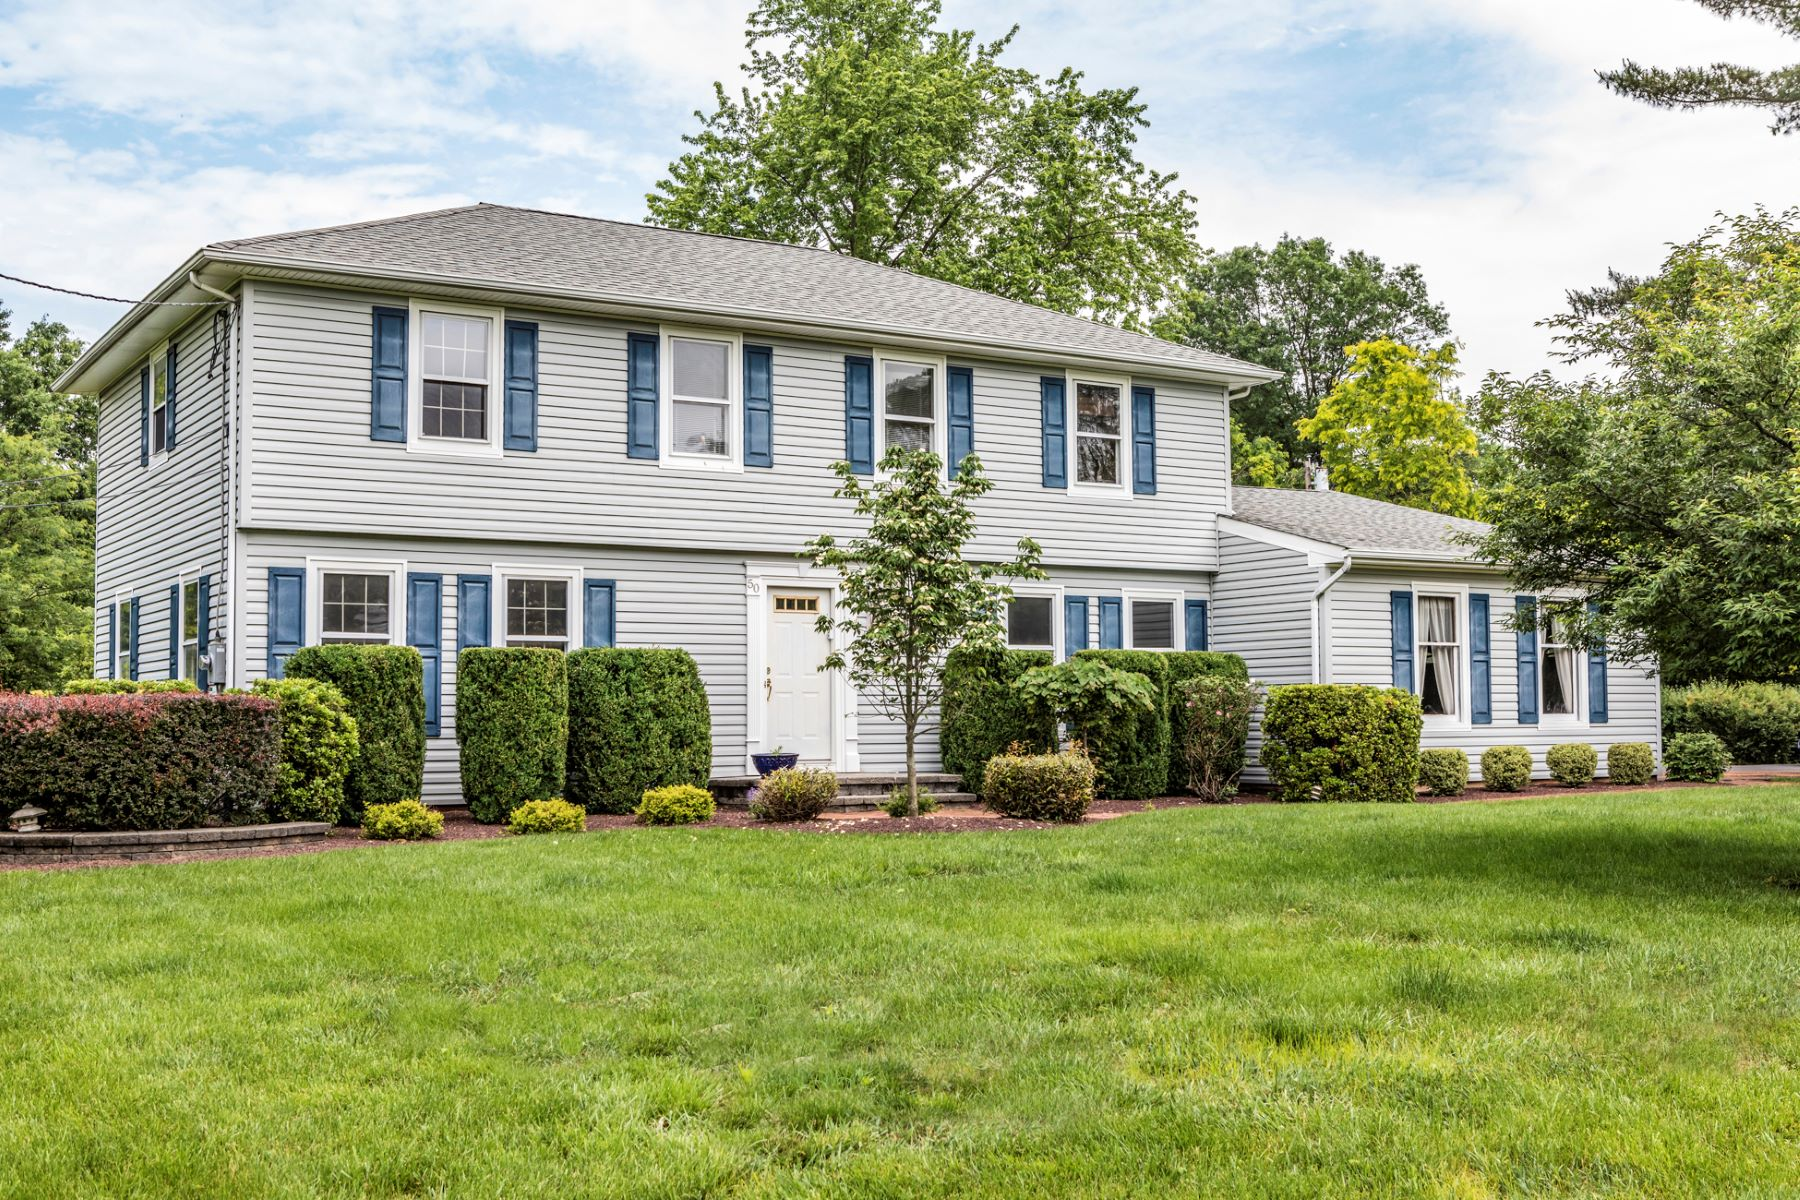 single family homes for Sale at Value-packed In A Terrific Neighborhood 50 Sleepy Hollow Lane, Belle Mead, New Jersey 08502 United States